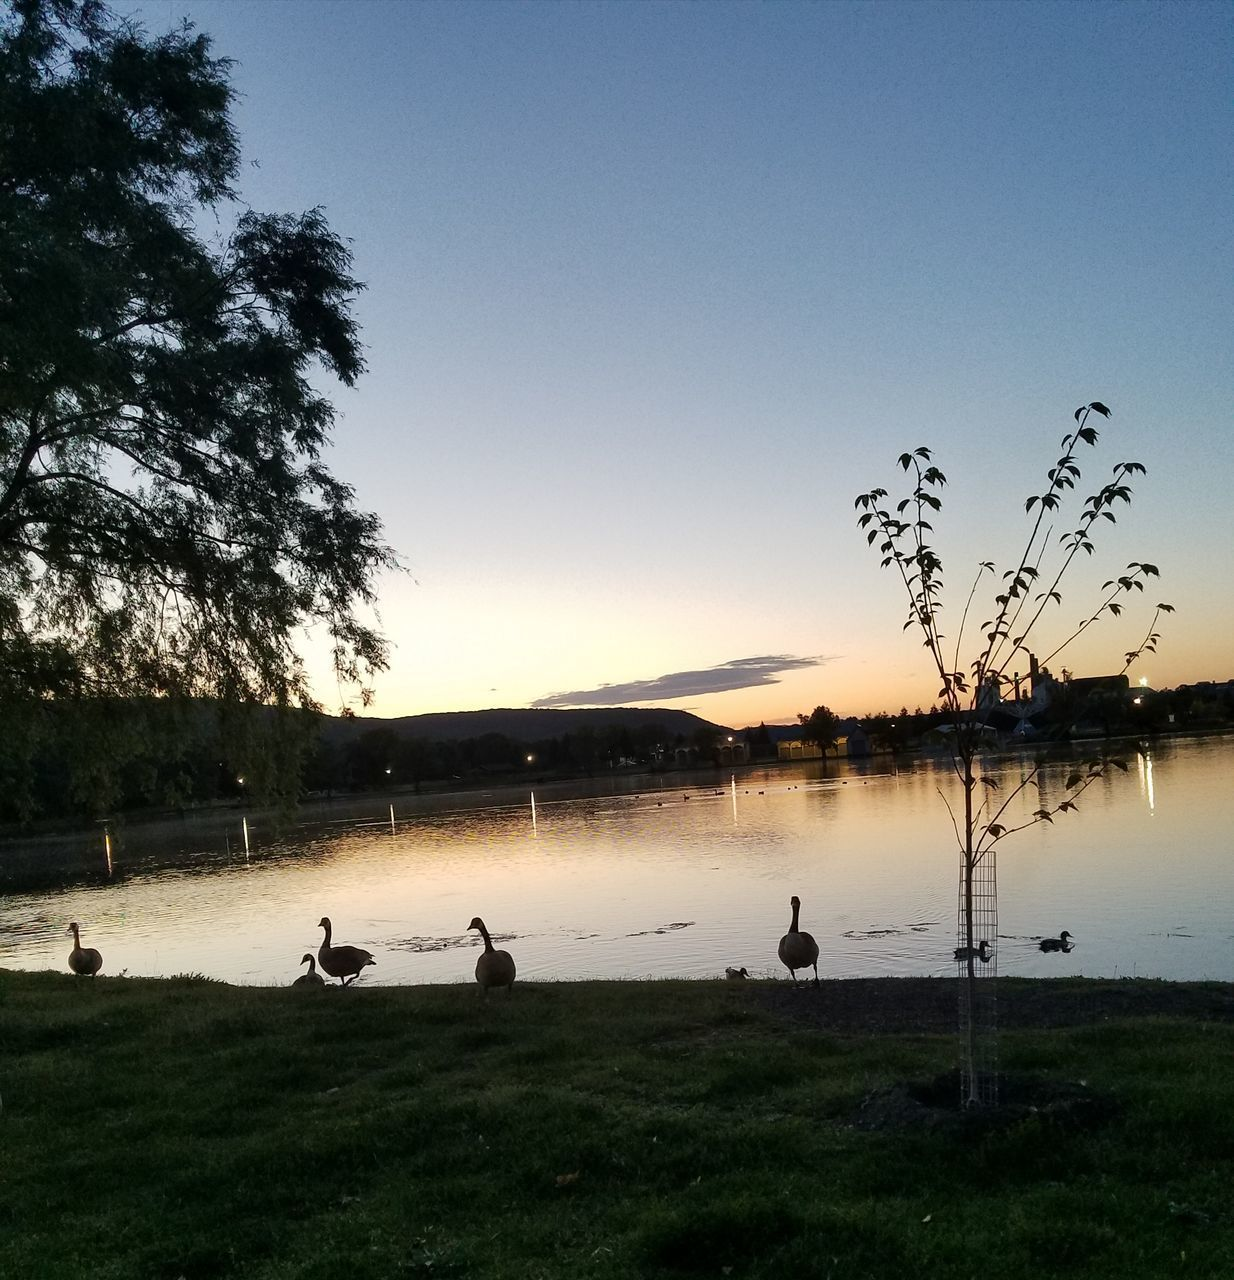 lake, bird, water, animals in the wild, nature, tree, animal themes, silhouette, grass, tranquil scene, beauty in nature, lakeshore, scenics, outdoors, reflection, animal wildlife, sunset, sky, tranquility, clear sky, large group of animals, real people, day